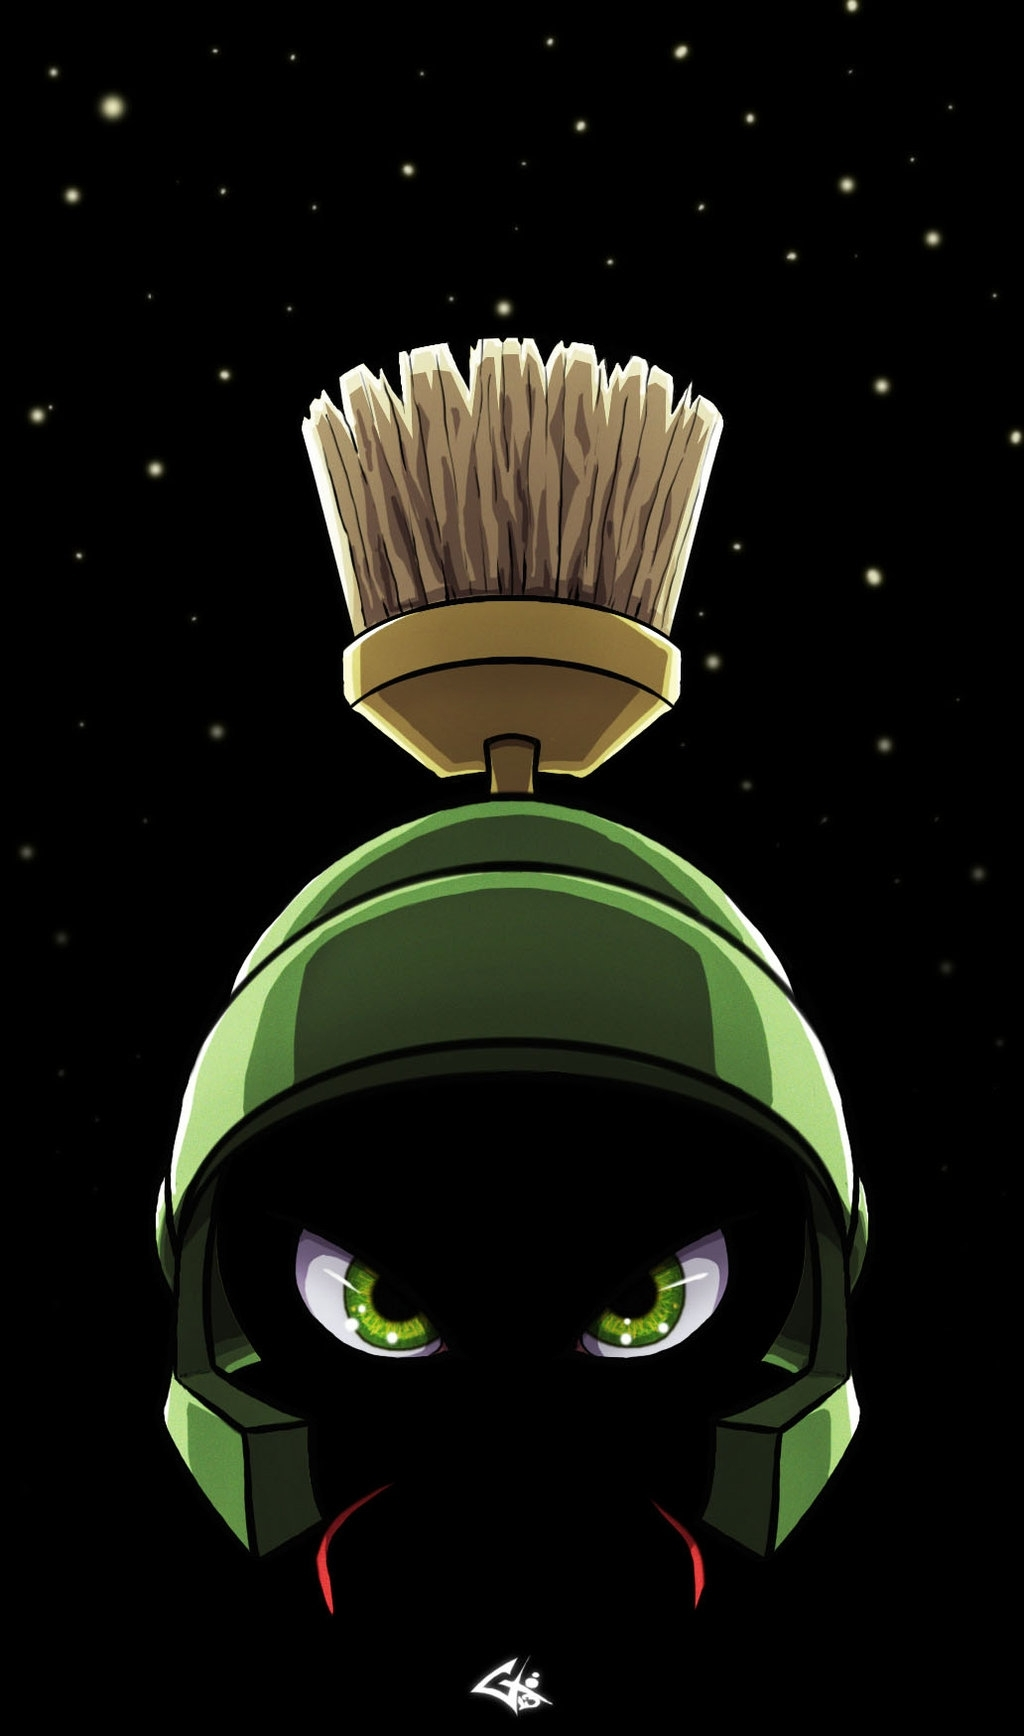 marvin the martian wallpapers, marvin the martian backgrounds for pc